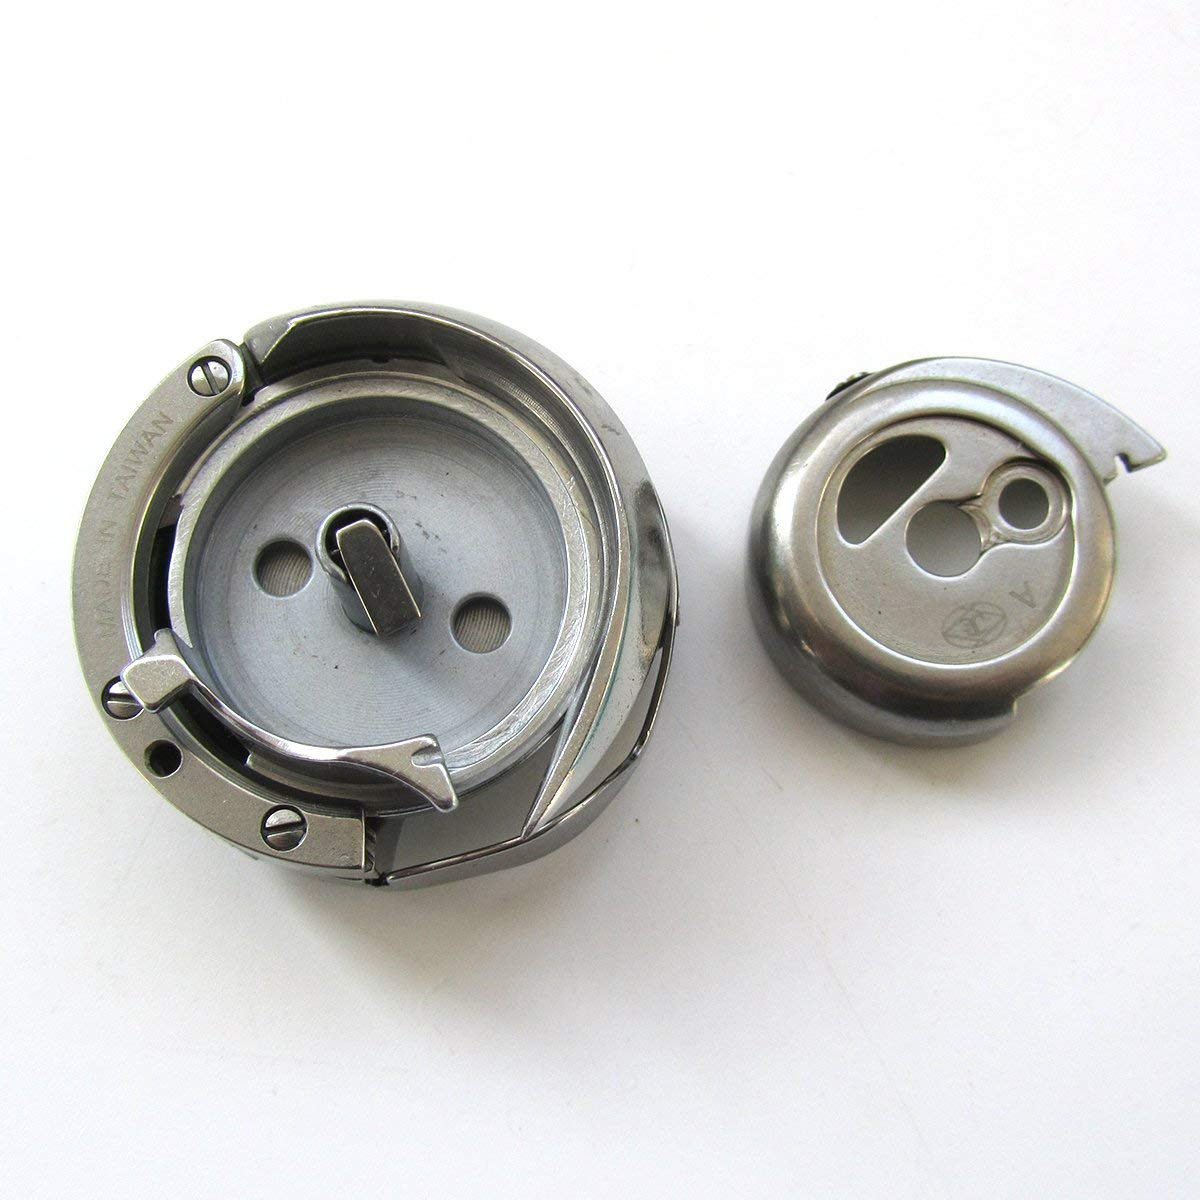 KUNPENG - Rotary Hook Assembly for PFAFF 1245 Industrial Walking Foot Machines #91-140539-91 1SET by ckpsms